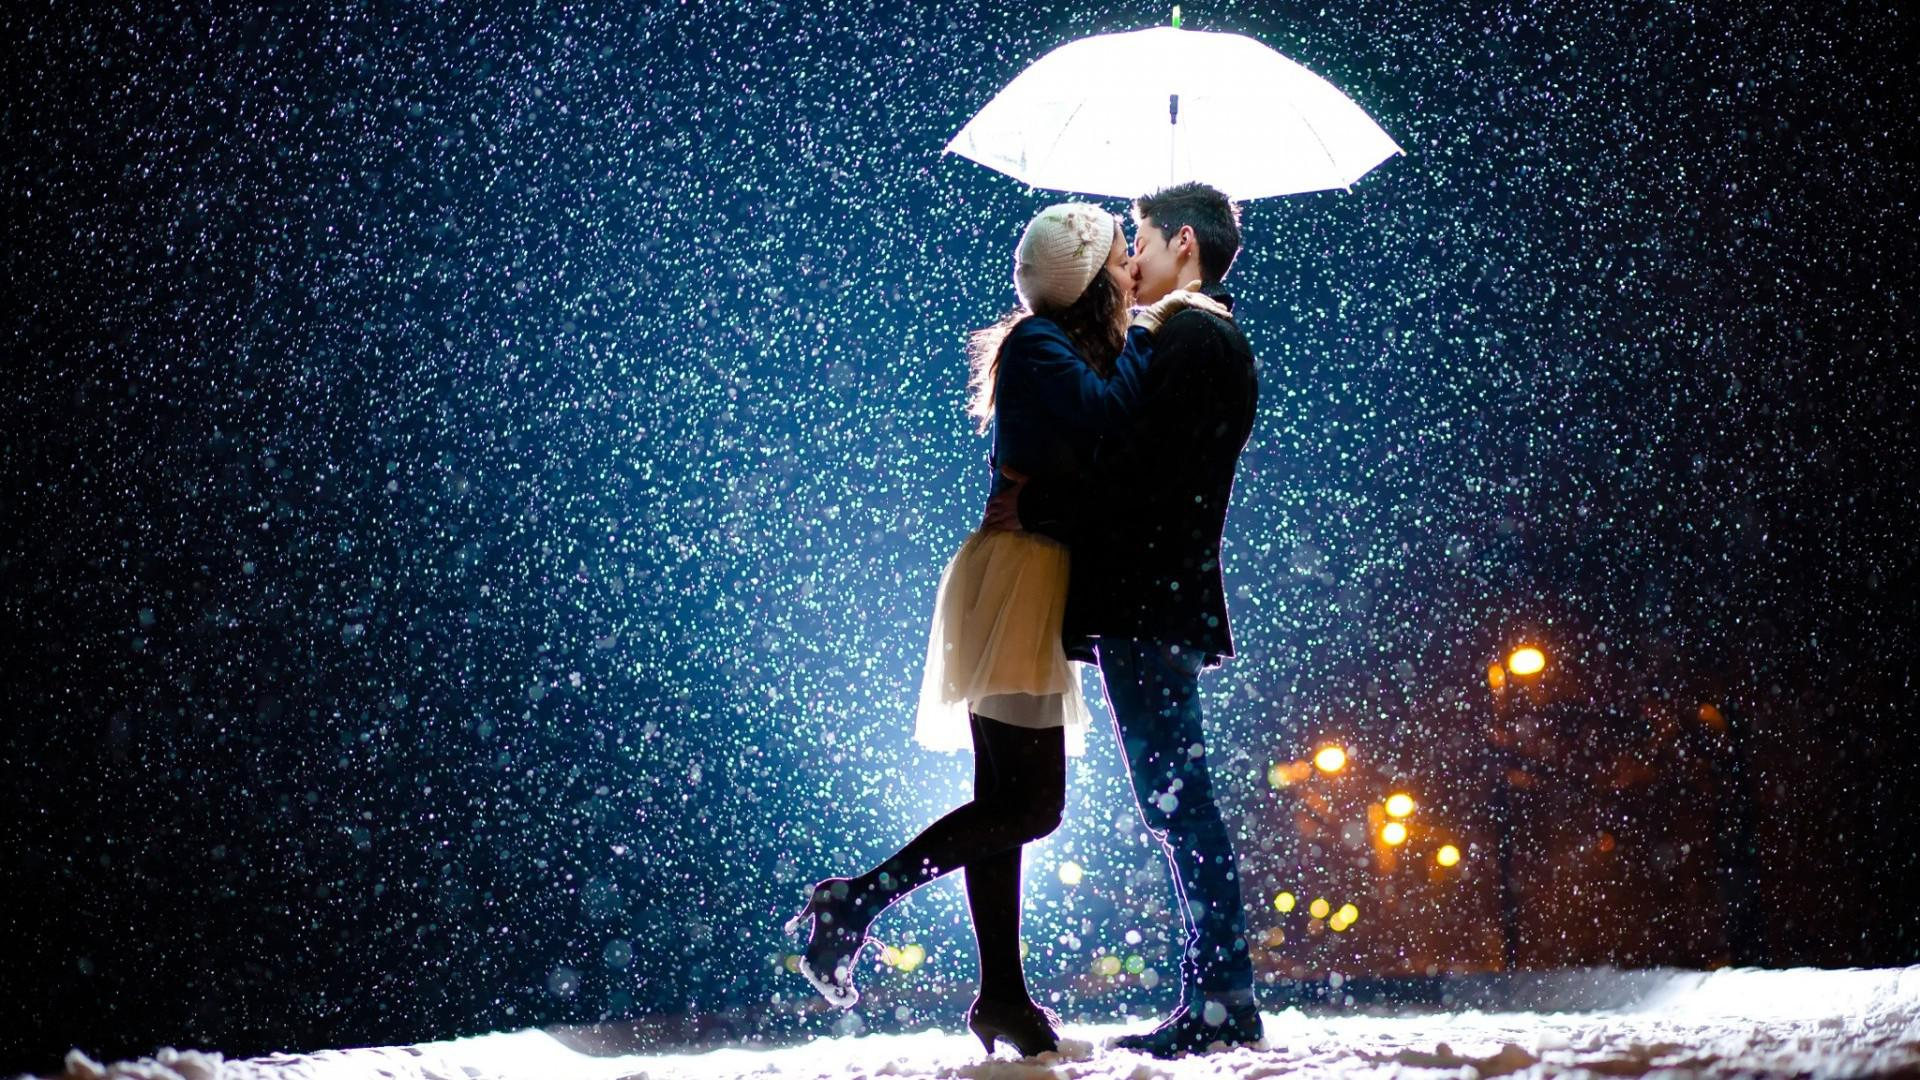 Couple Wallpapers Pictures | One HD Wallpaper Pictures Backgrounds ...